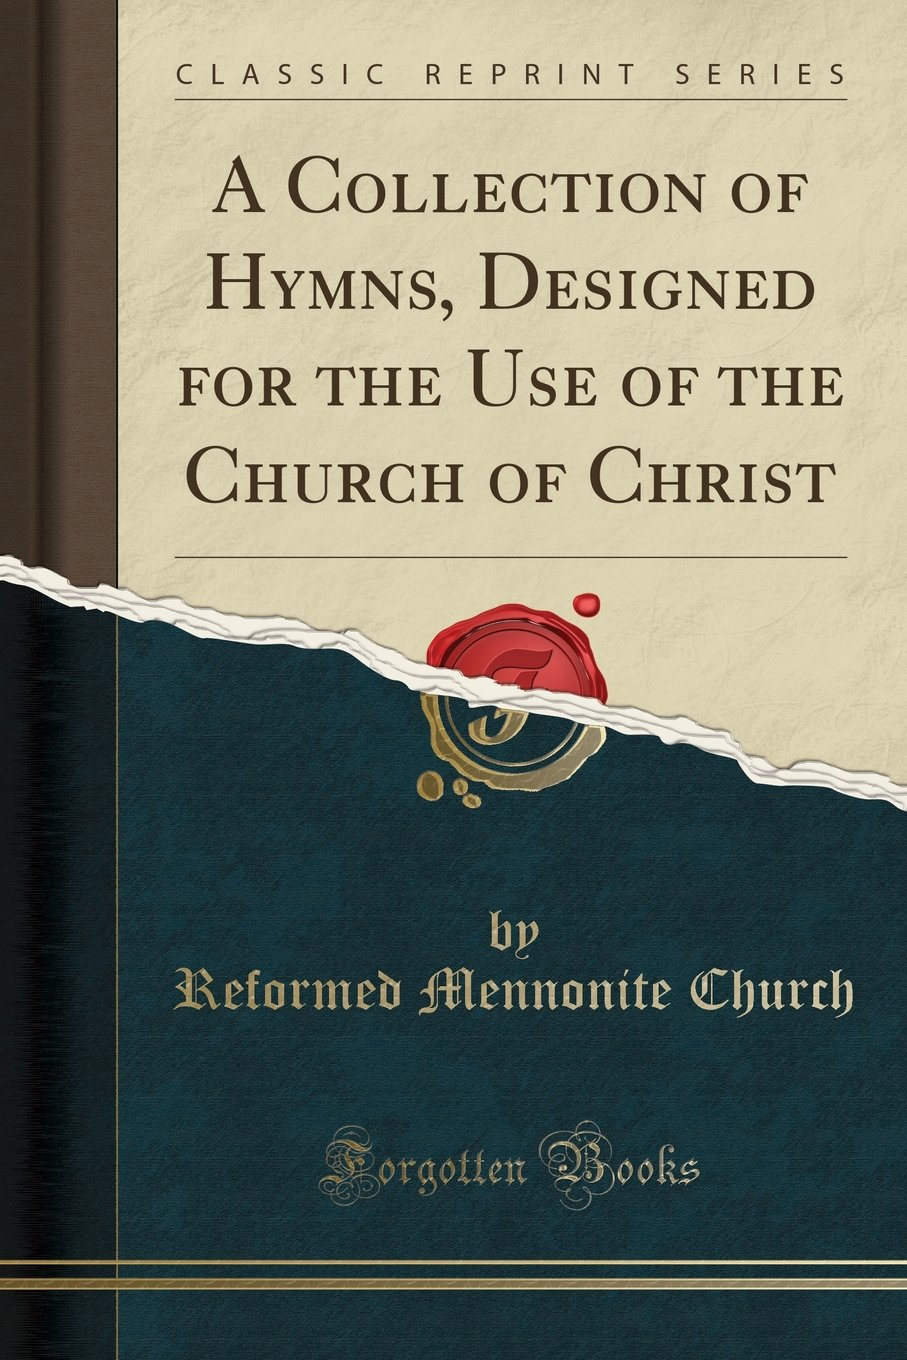 A Collection of Hymns, Designed for the Use of the Church of Christ (Classic Reprint) ebook